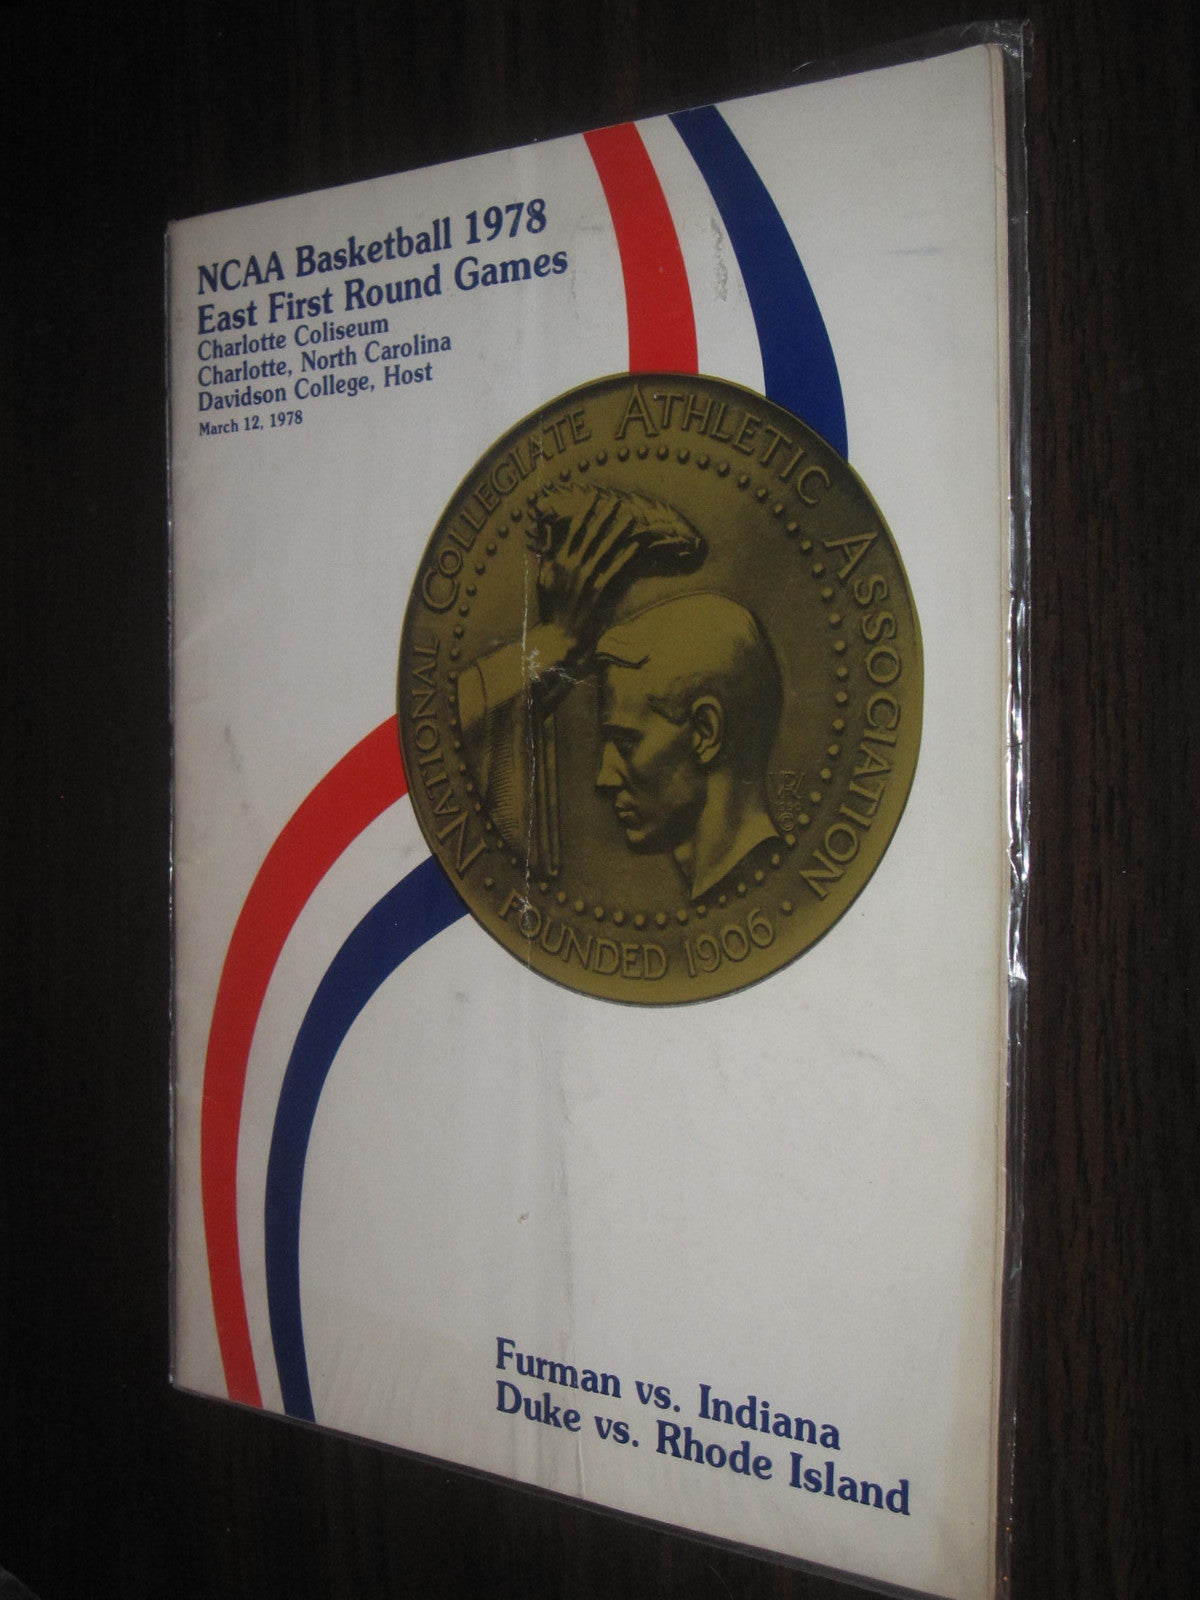 1978 NCAA Basketball East First Round Game Program, Indiana, ,Duke, Furman, Rhode Island - Vintage Indy Sports